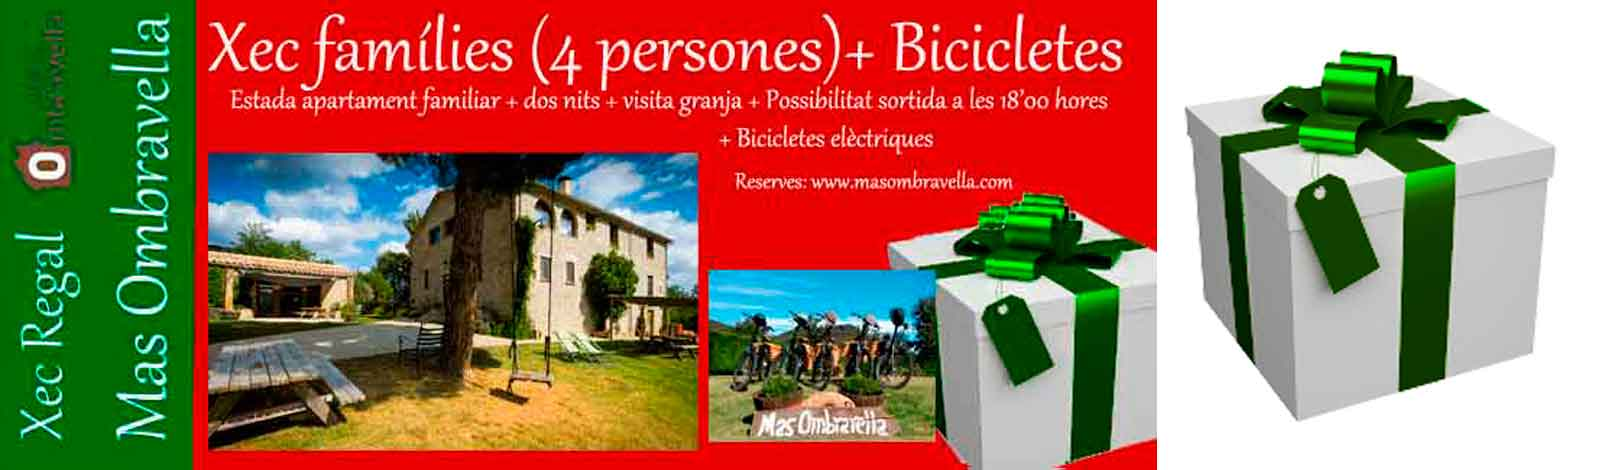 Vouchers for couples and families Mas Ombravella electric bicycle